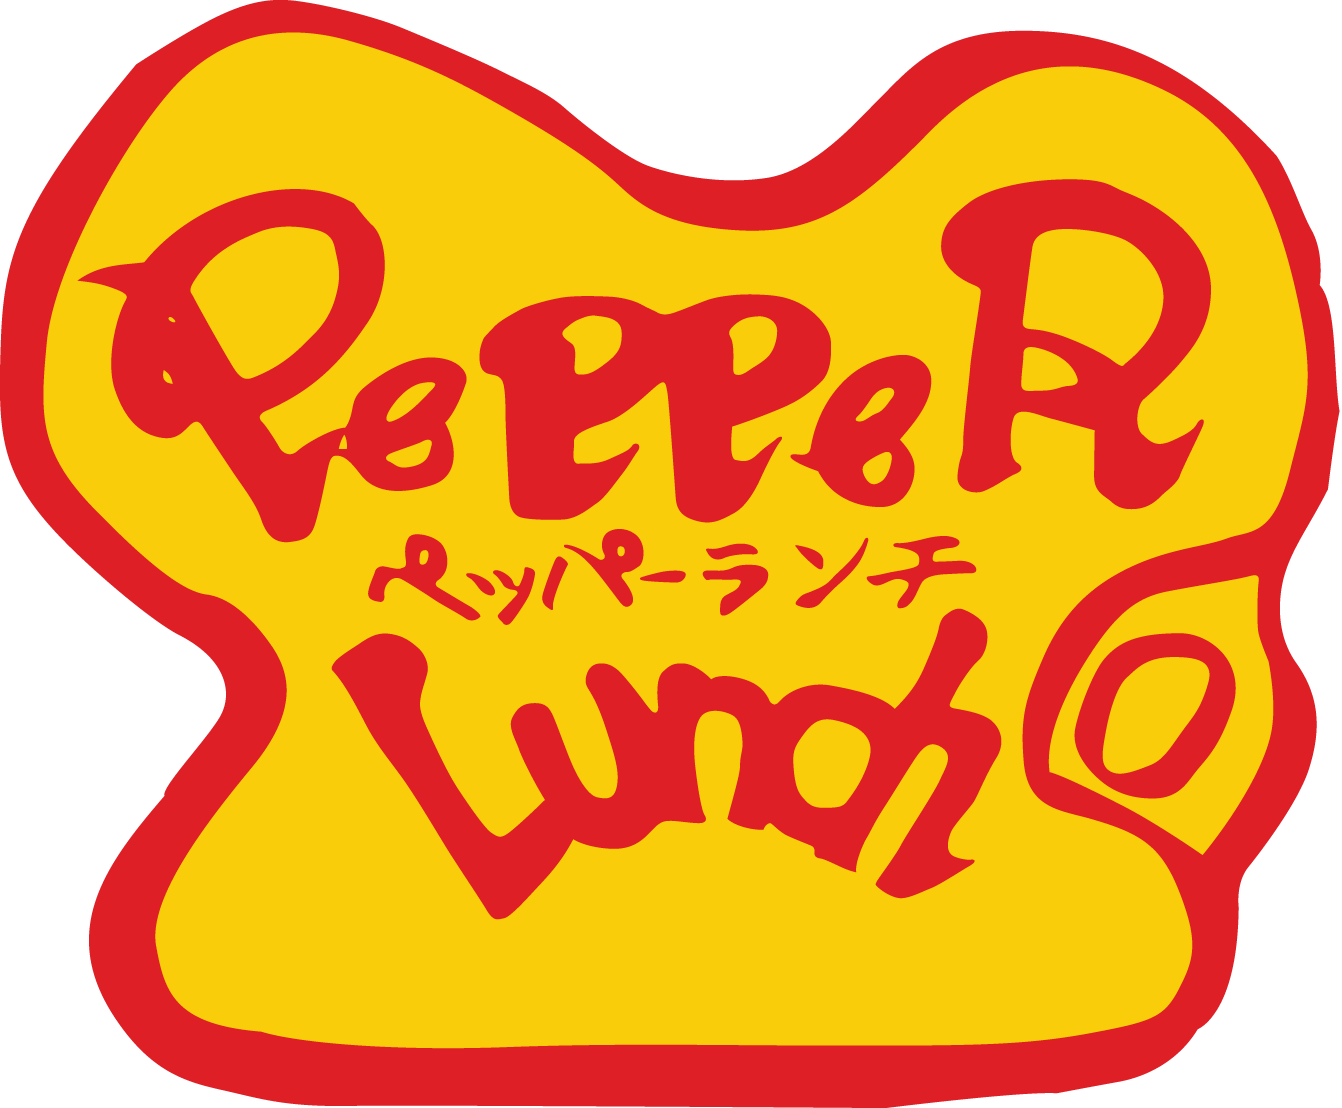 Clipart lunch lunch pass. Pepper jakarta in food